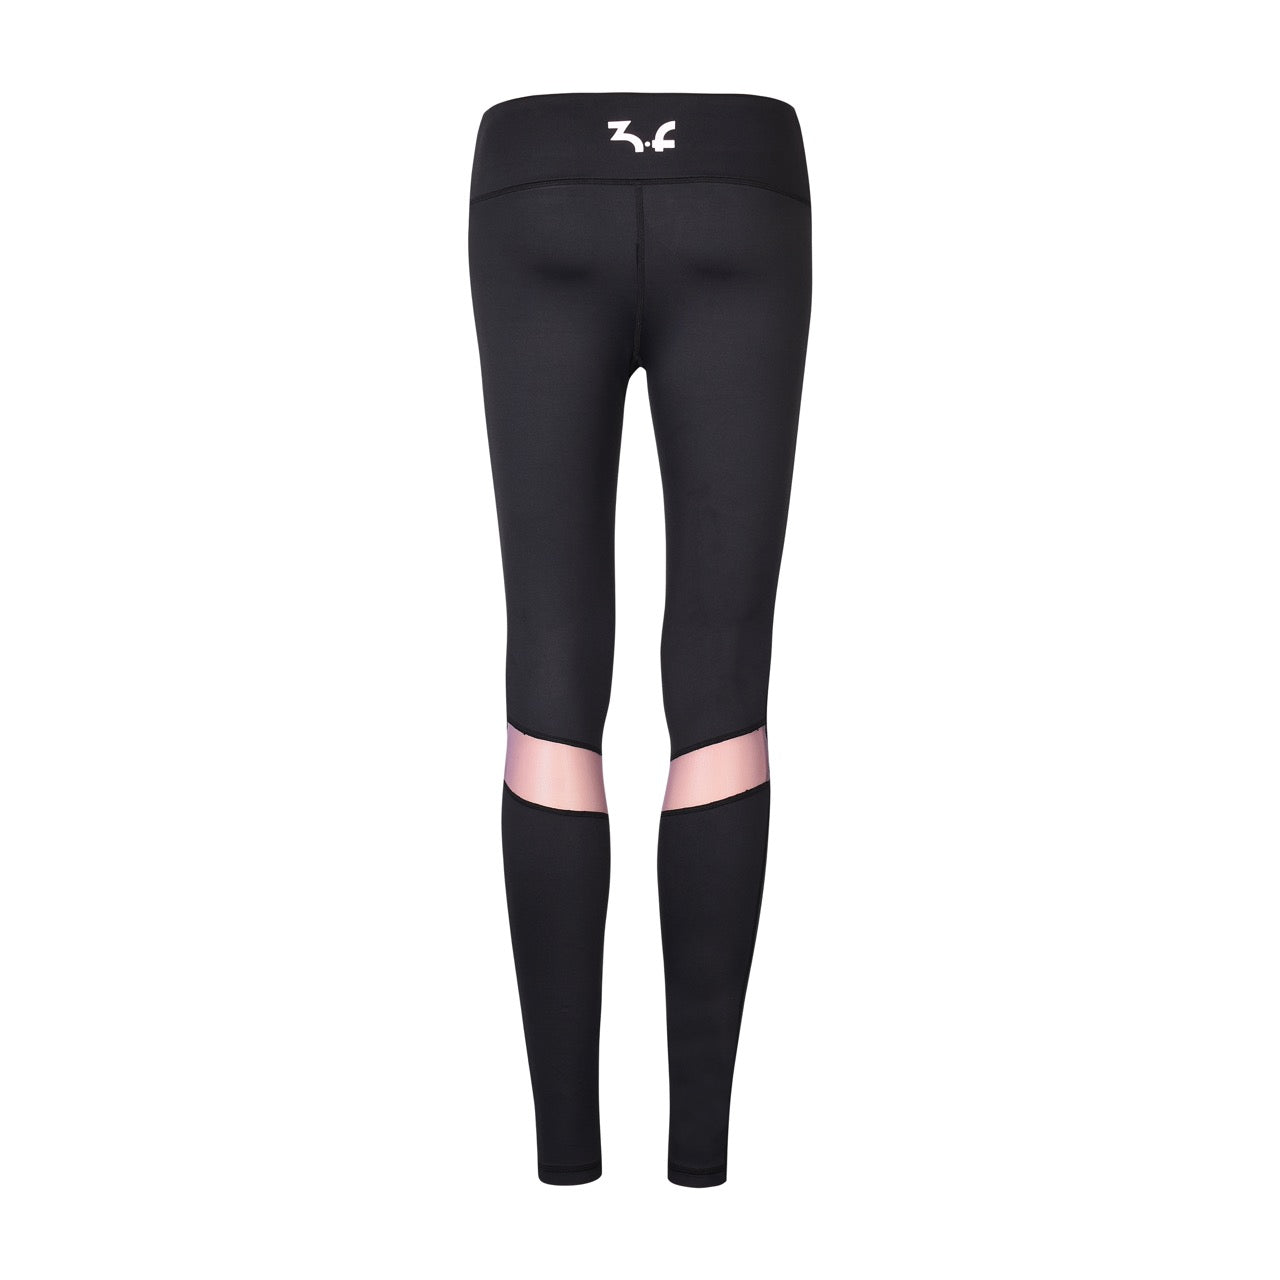 "Your workout legging ""Femke"" with knee scrunches - IAM3F"